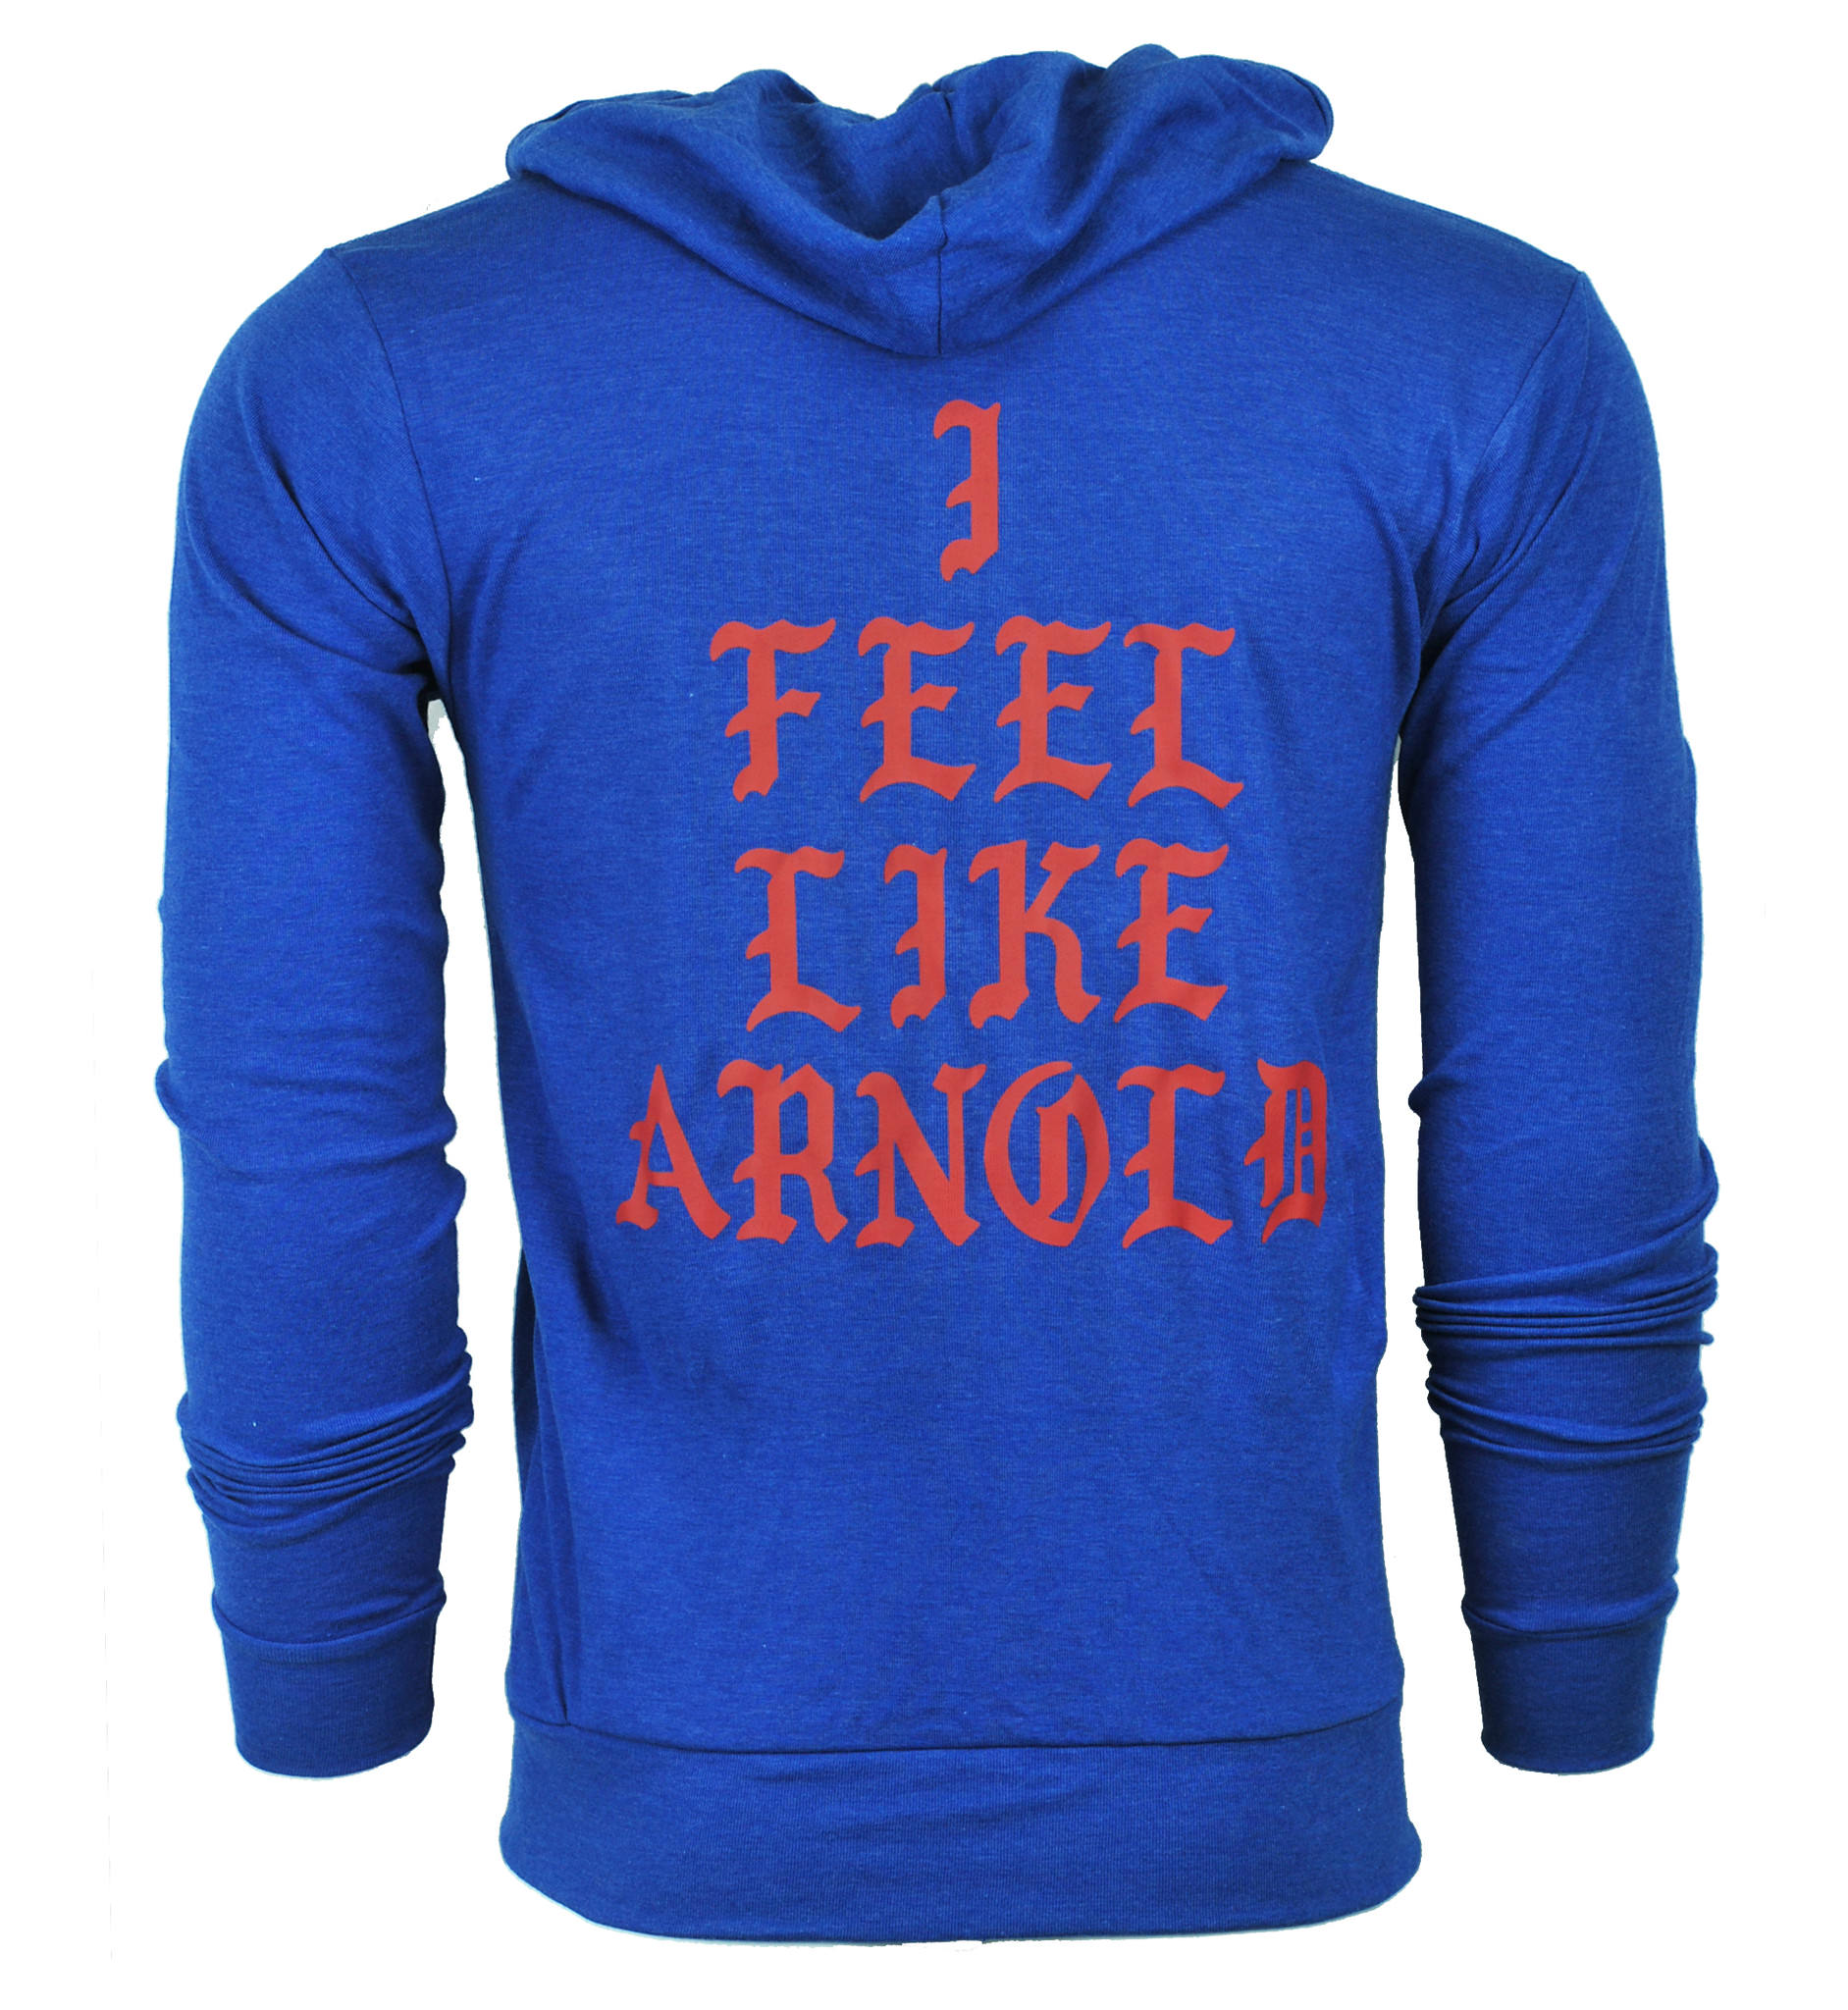 I Feel Like Arnold Triblend Zip-Up Lightweight Hoodie - Royal Blue